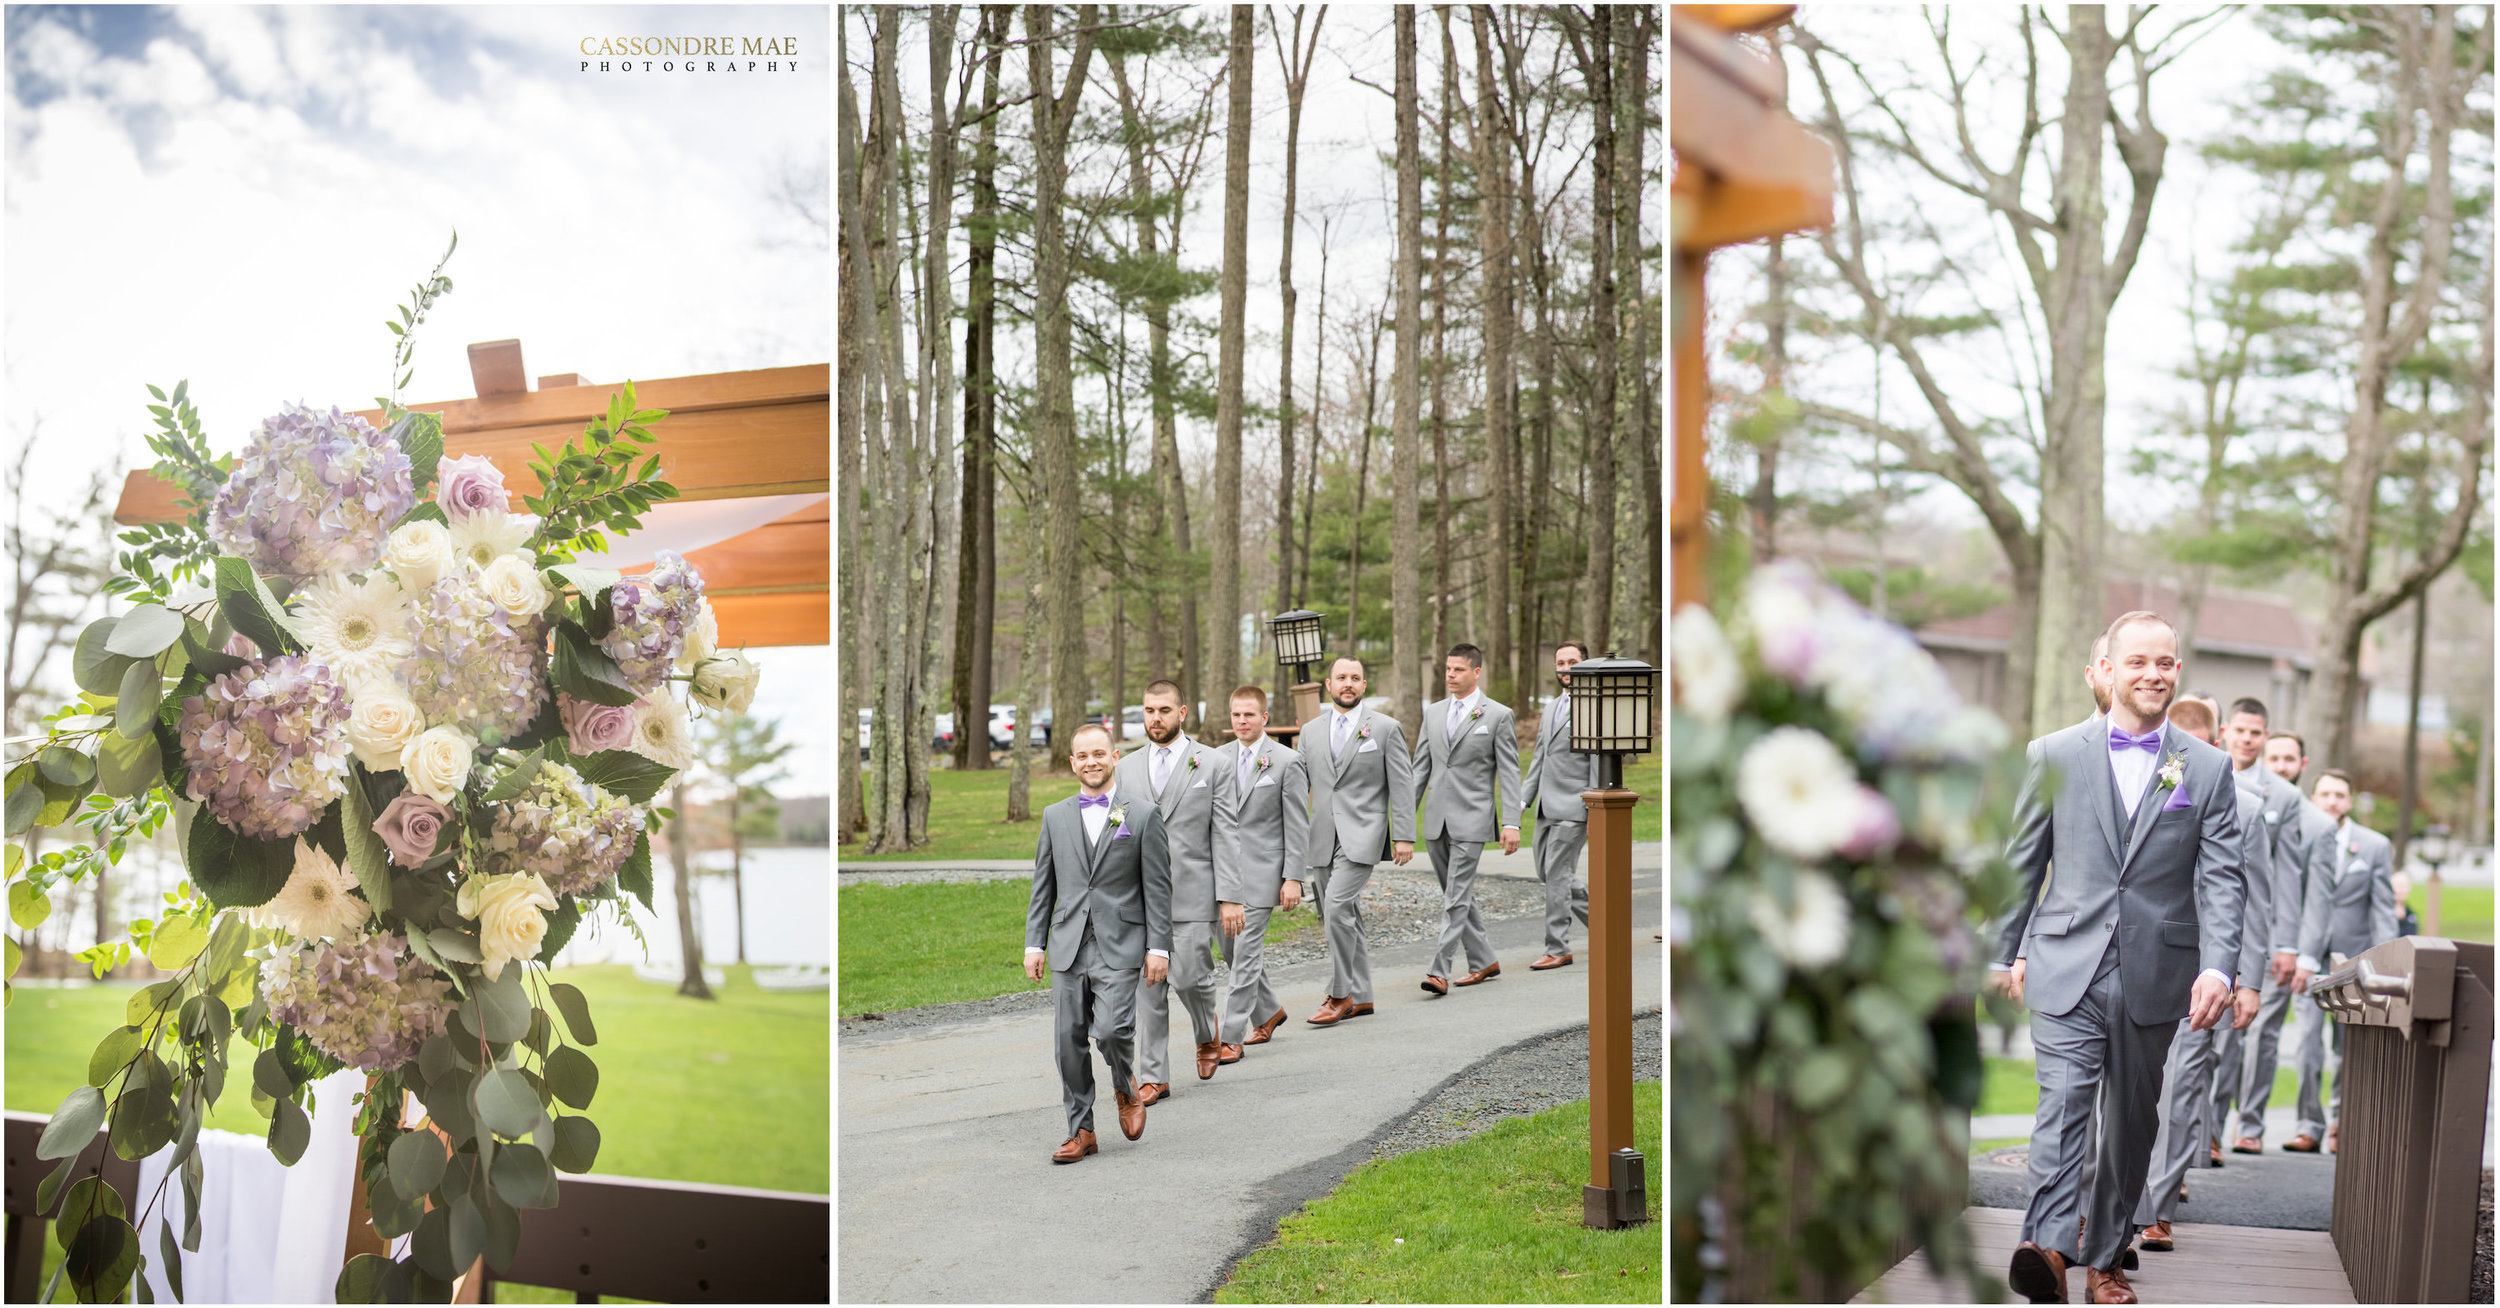 Cassondre Mae Photography Woodloch Resort Wedding 17.jpg